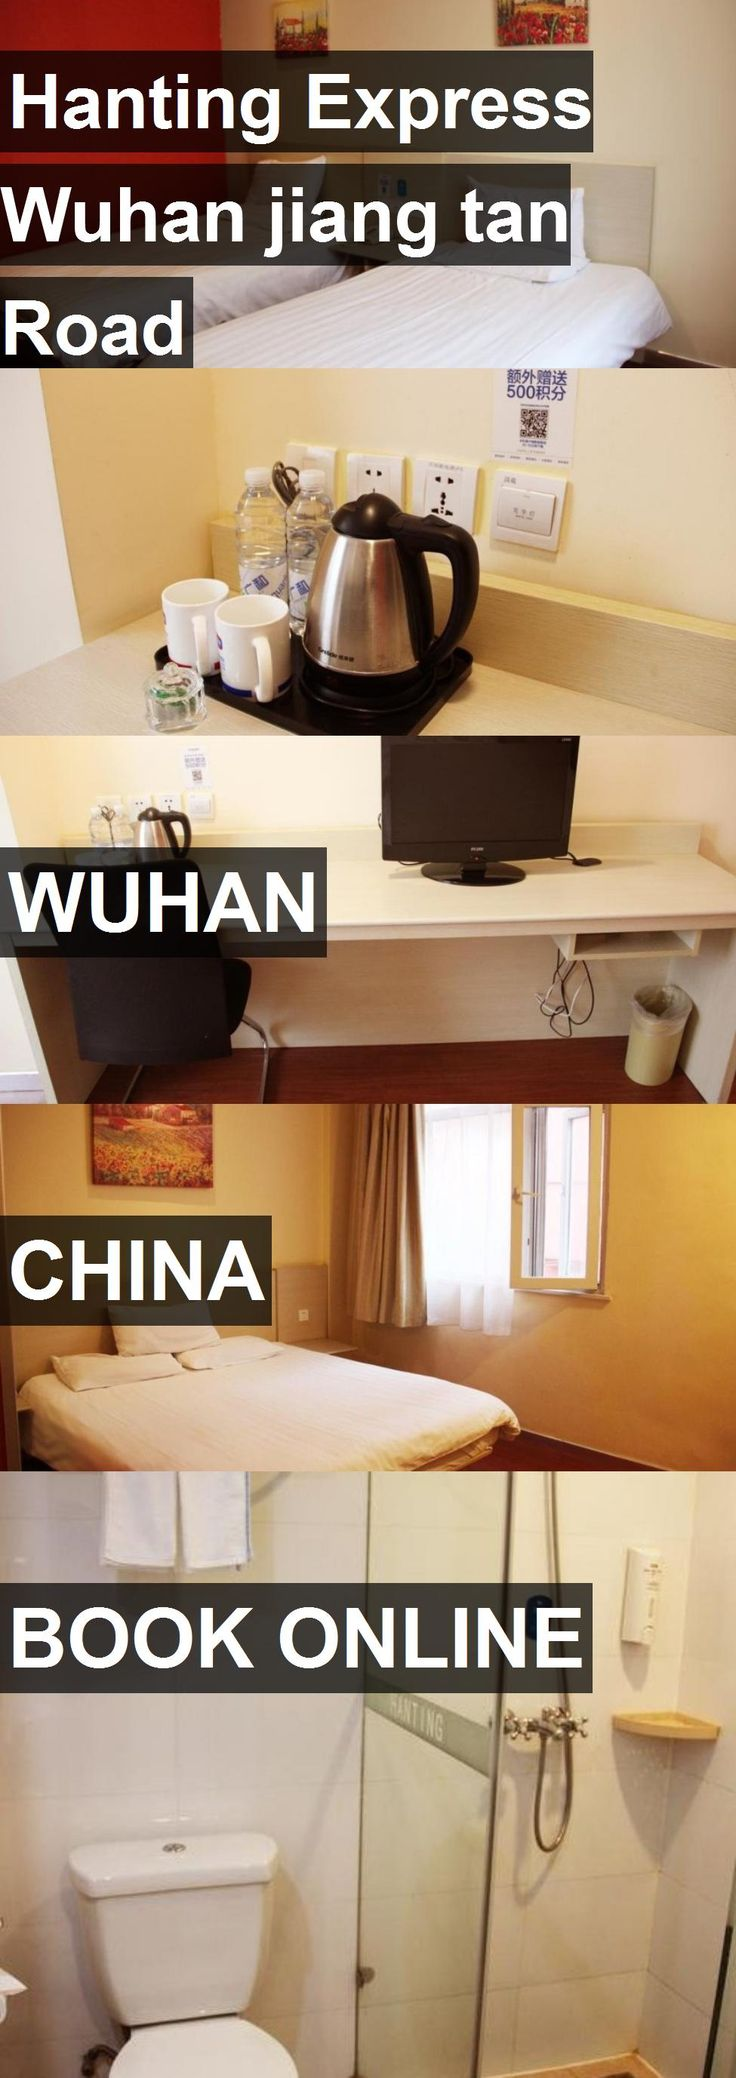 Hotel Hanting Express Wuhan jiang tan Road in Wuhan, China. For more information, photos, reviews and best prices please follow the link. #China #Wuhan #travel #vacation #hotel